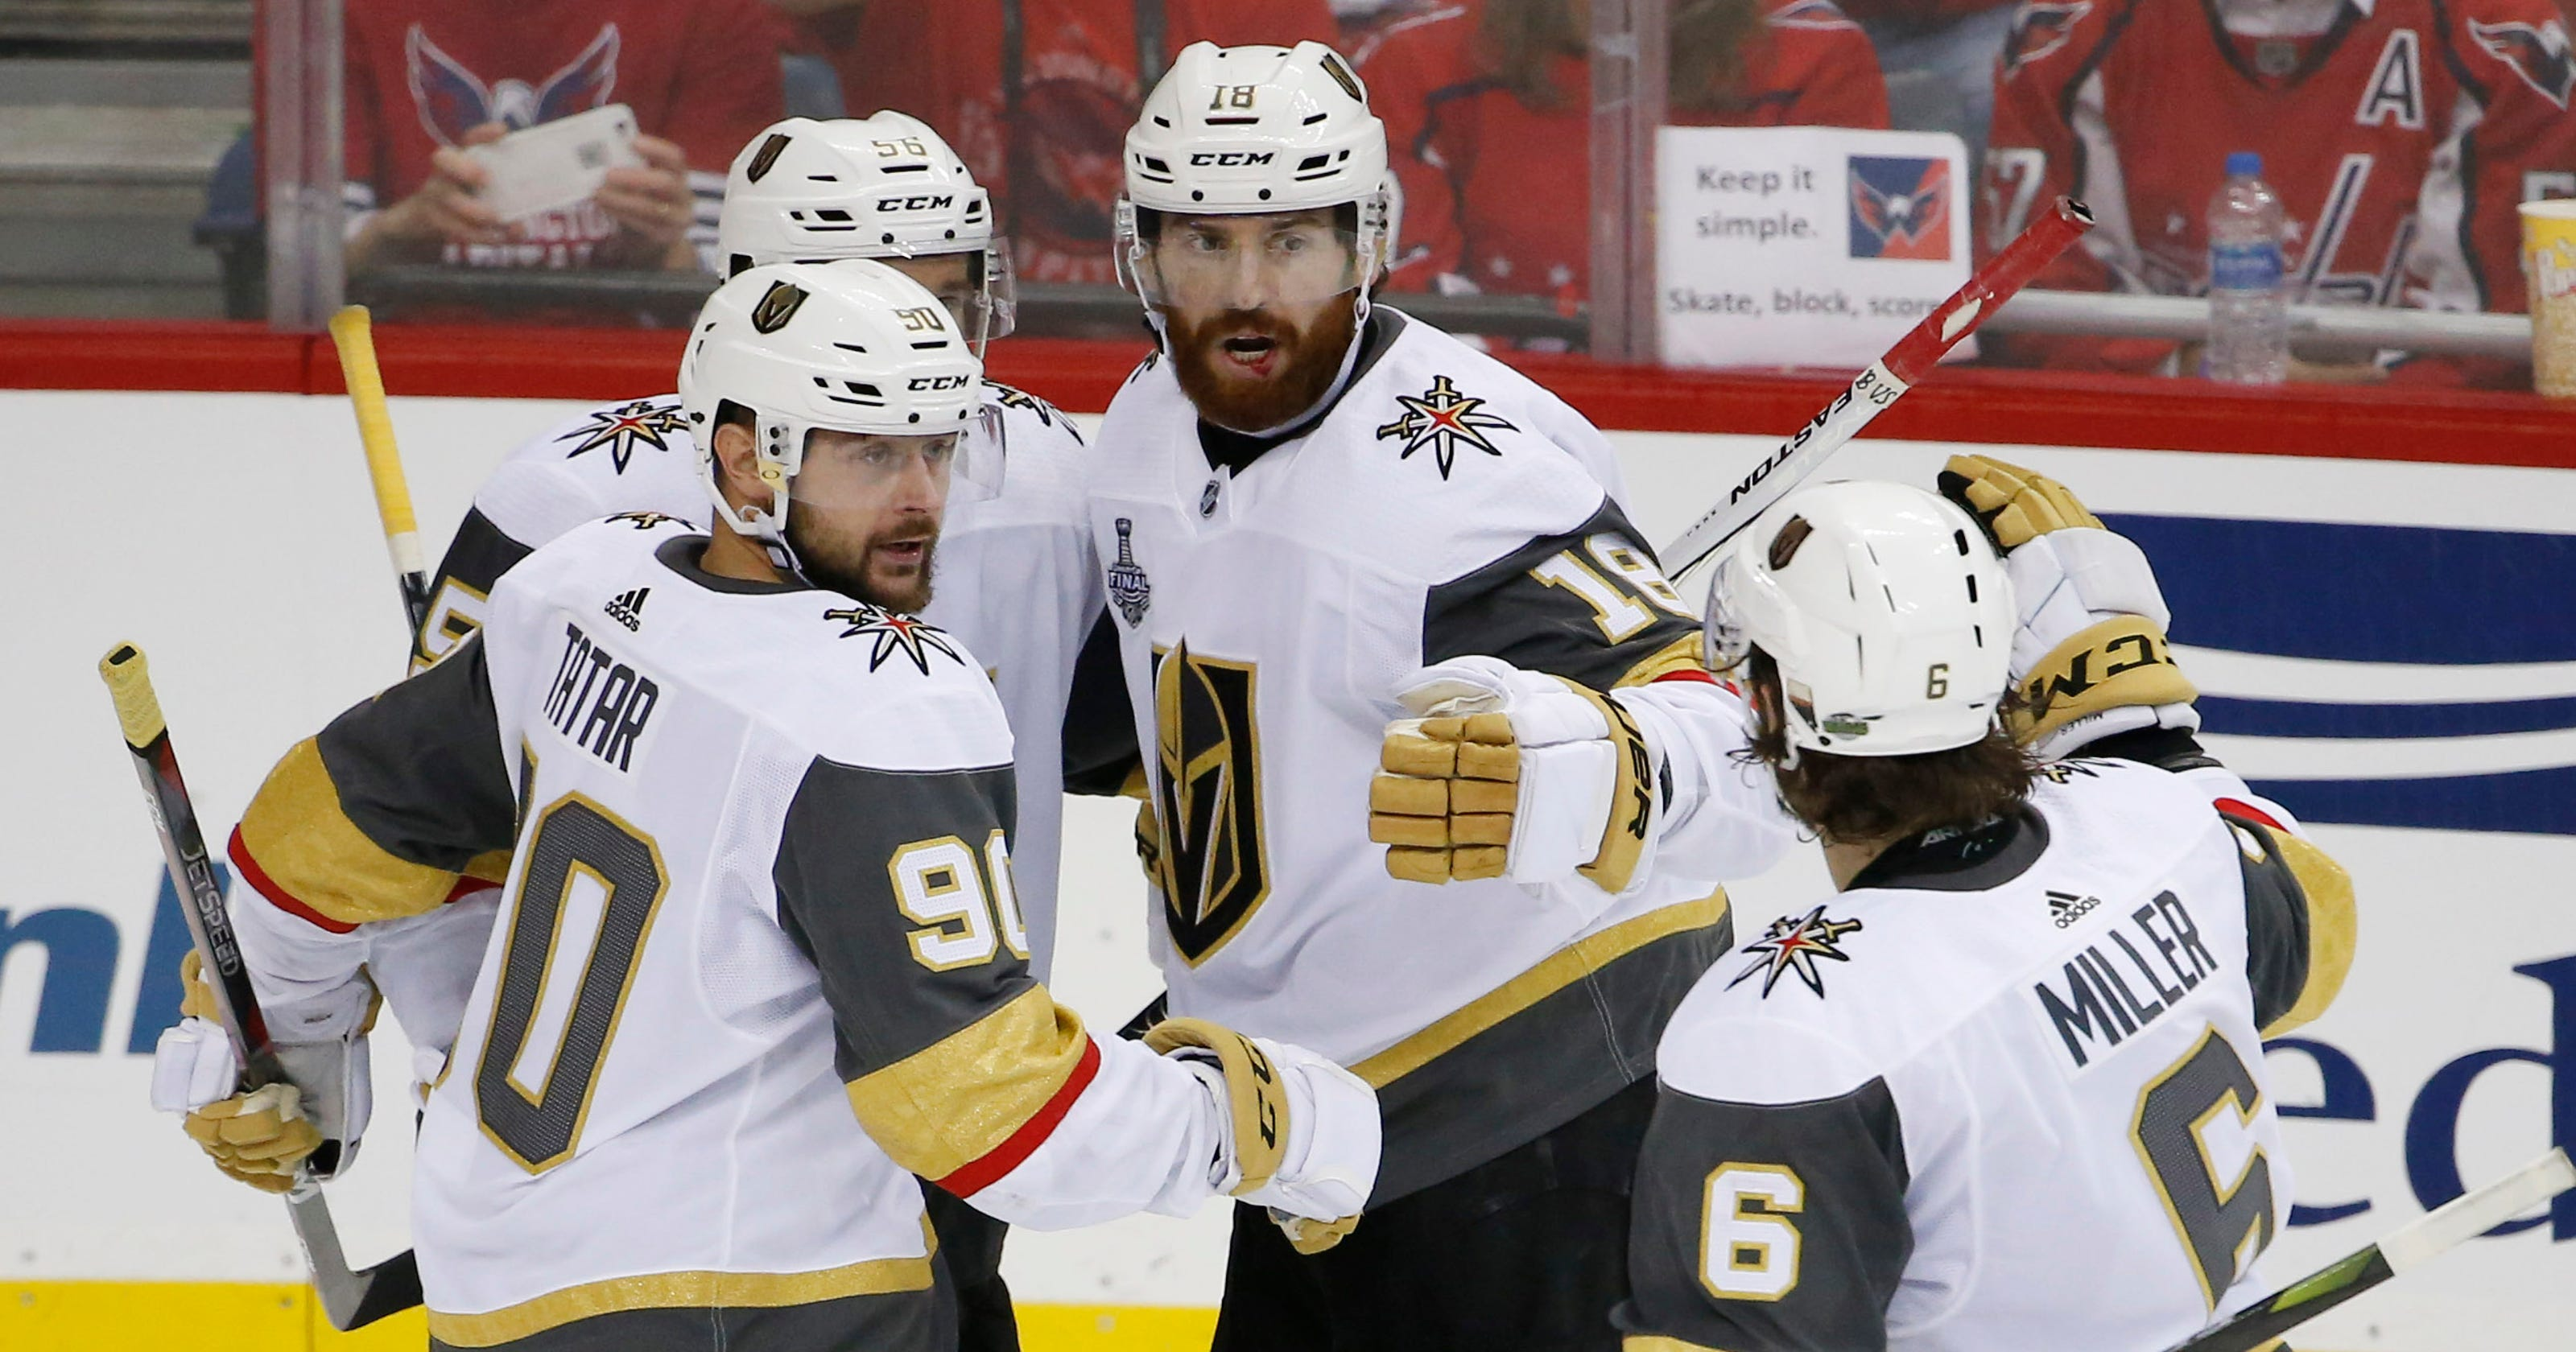 beccef8dc From 500-1 odds to a 3-1 in Stanley Cup Final deficit  How Golden Knights  can do unthinkable again